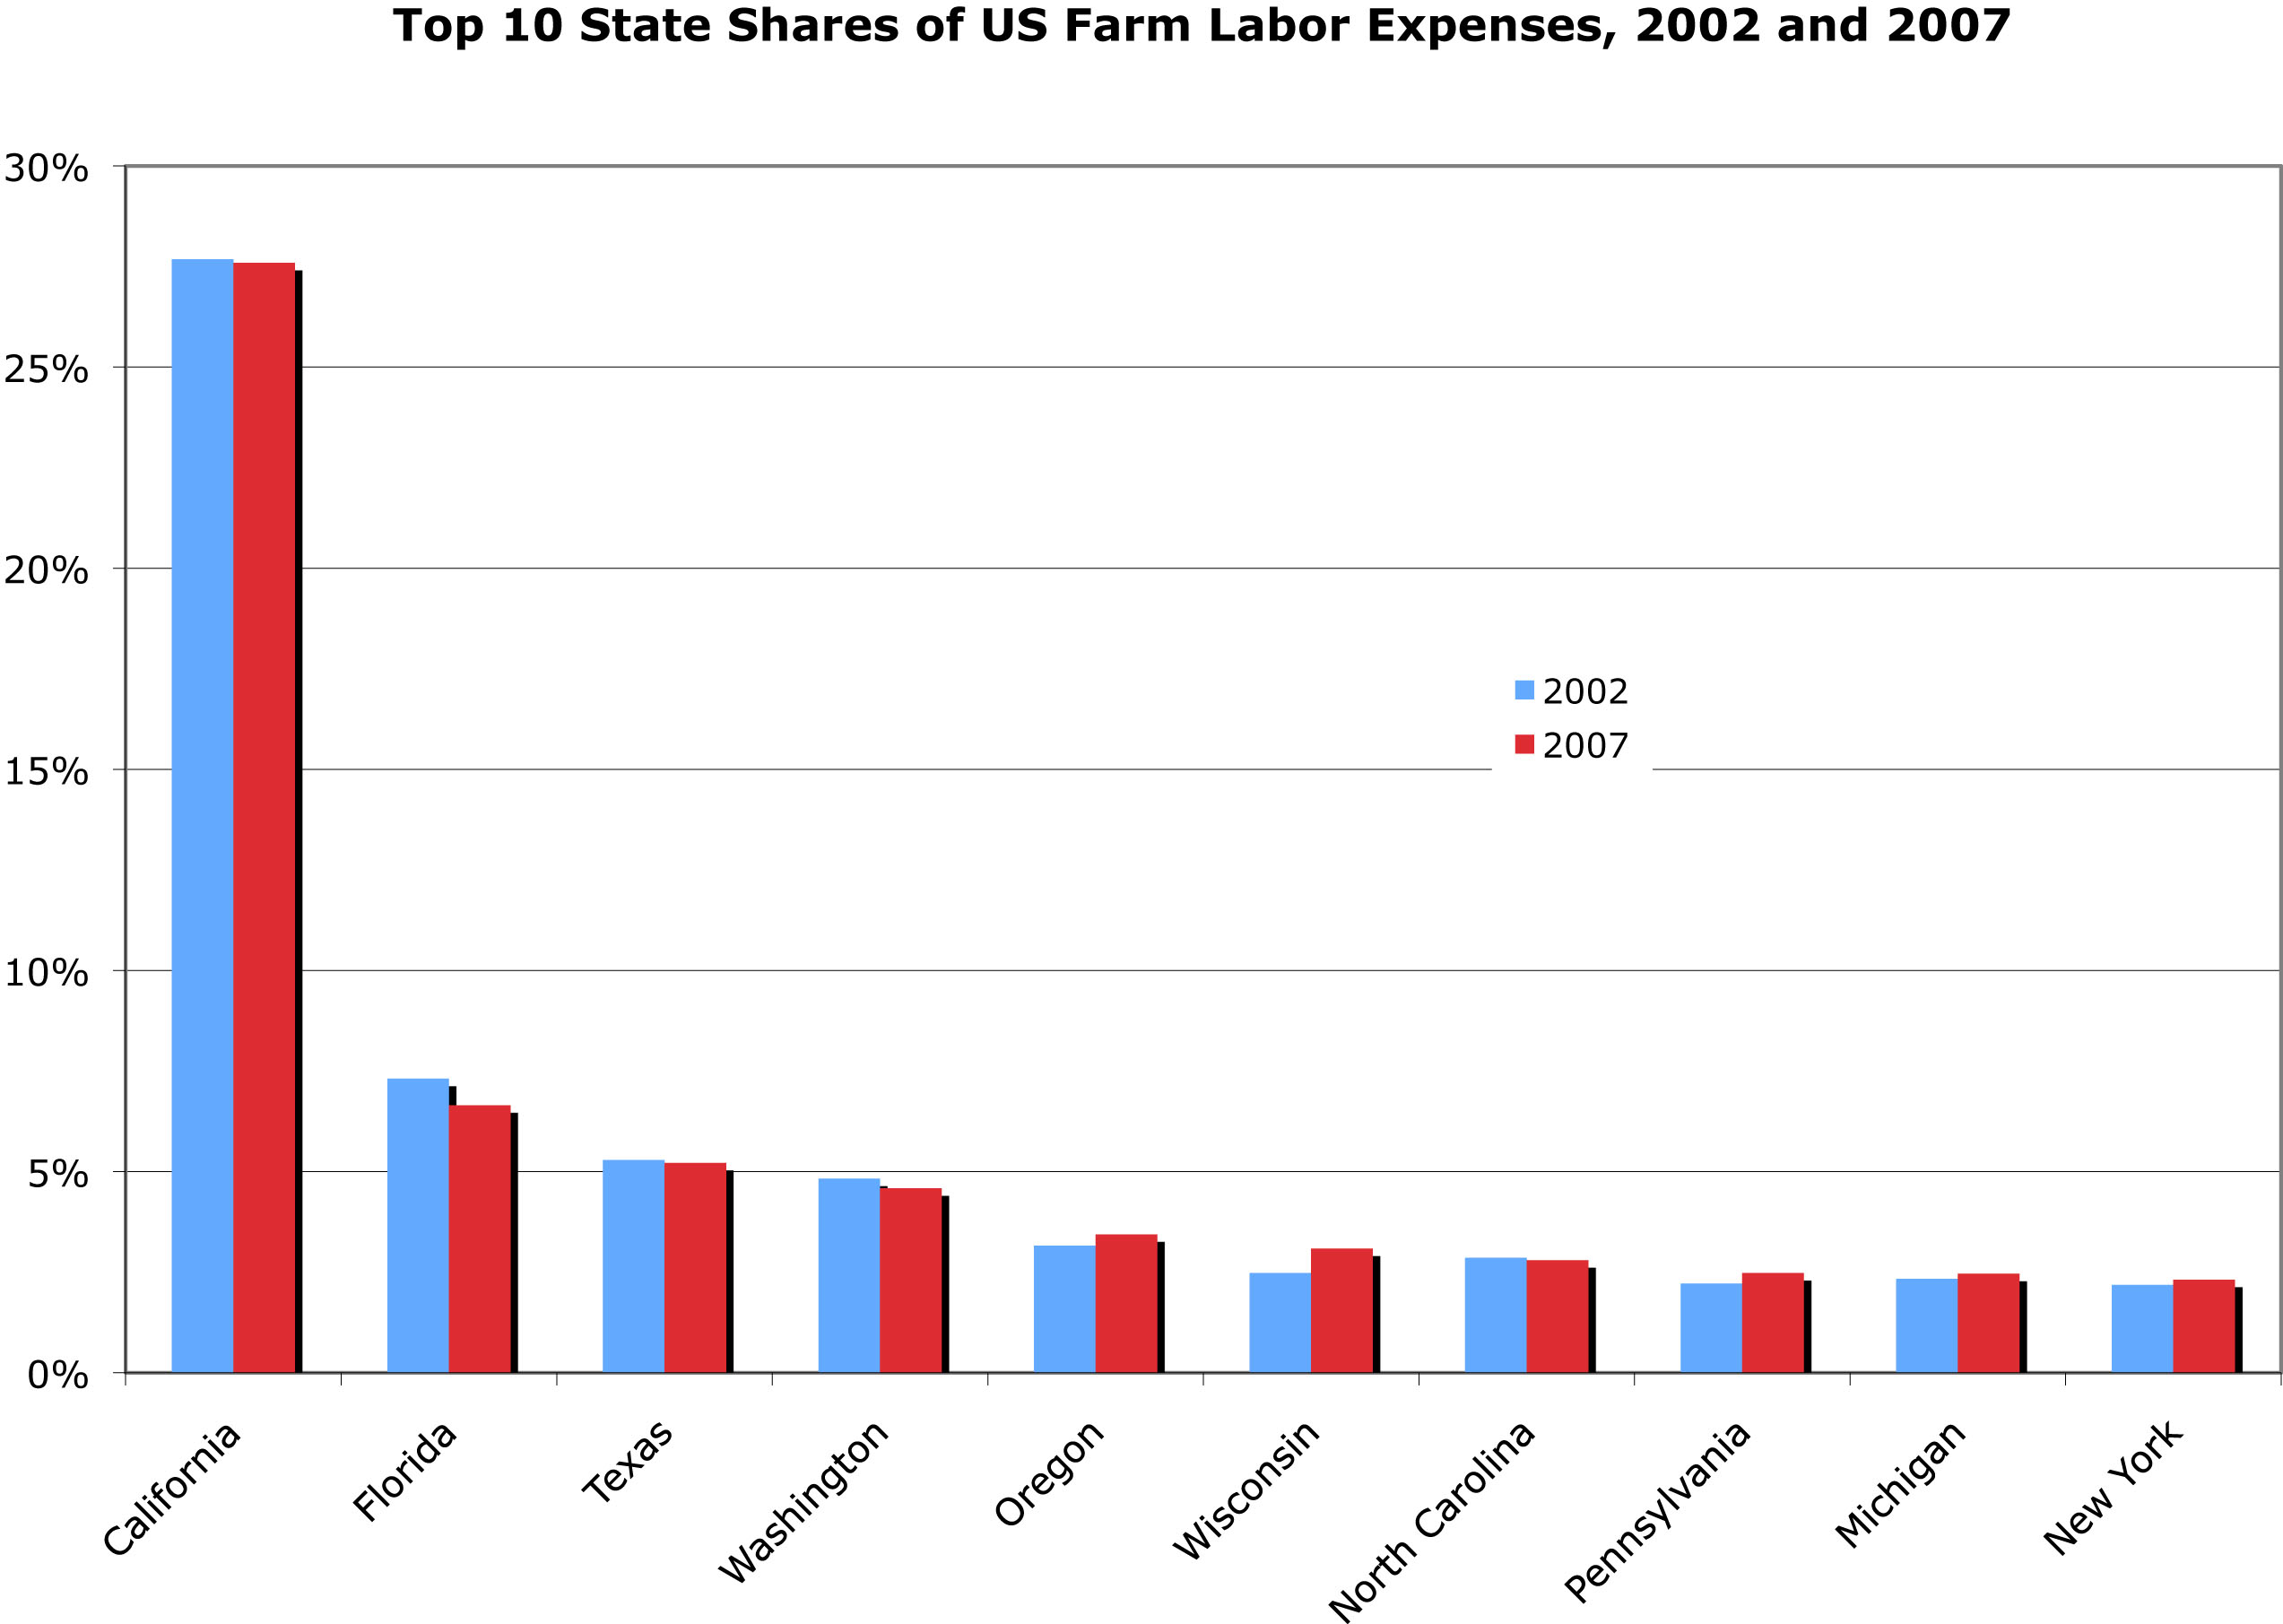 Top 10 State Shares of US Farm Labor Expenses, 2002 and 2007